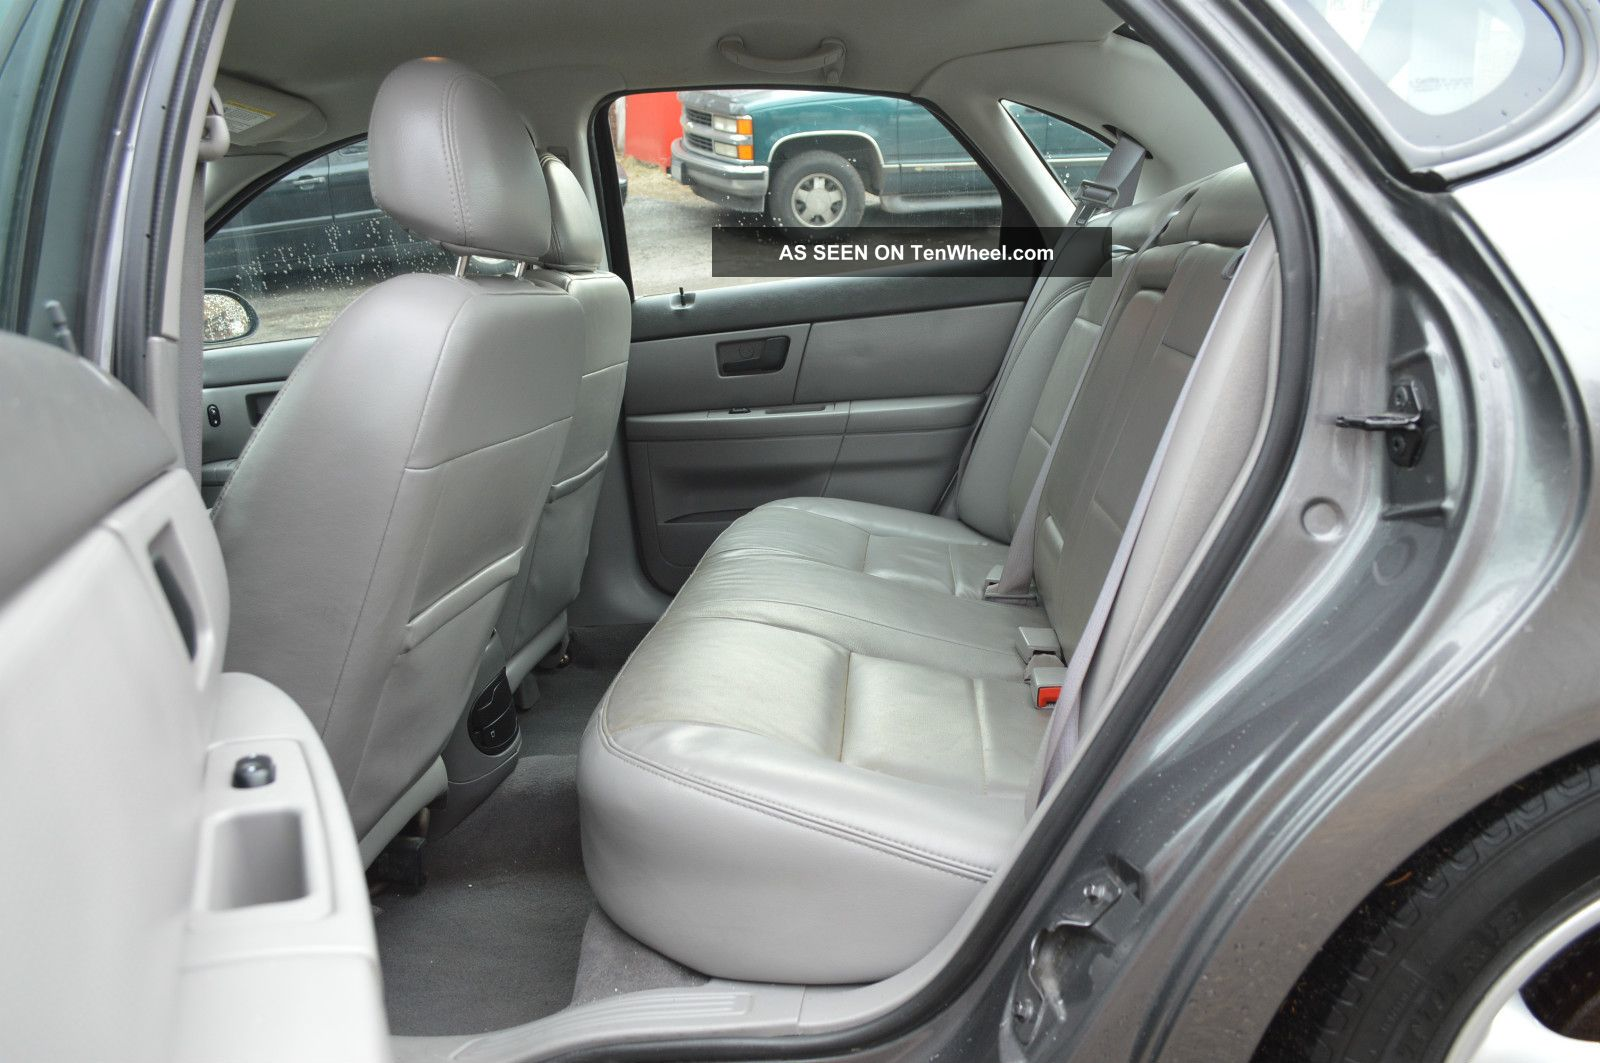 2004 gray metallic ford taurus ses v6 3 0l automatic w. Black Bedroom Furniture Sets. Home Design Ideas